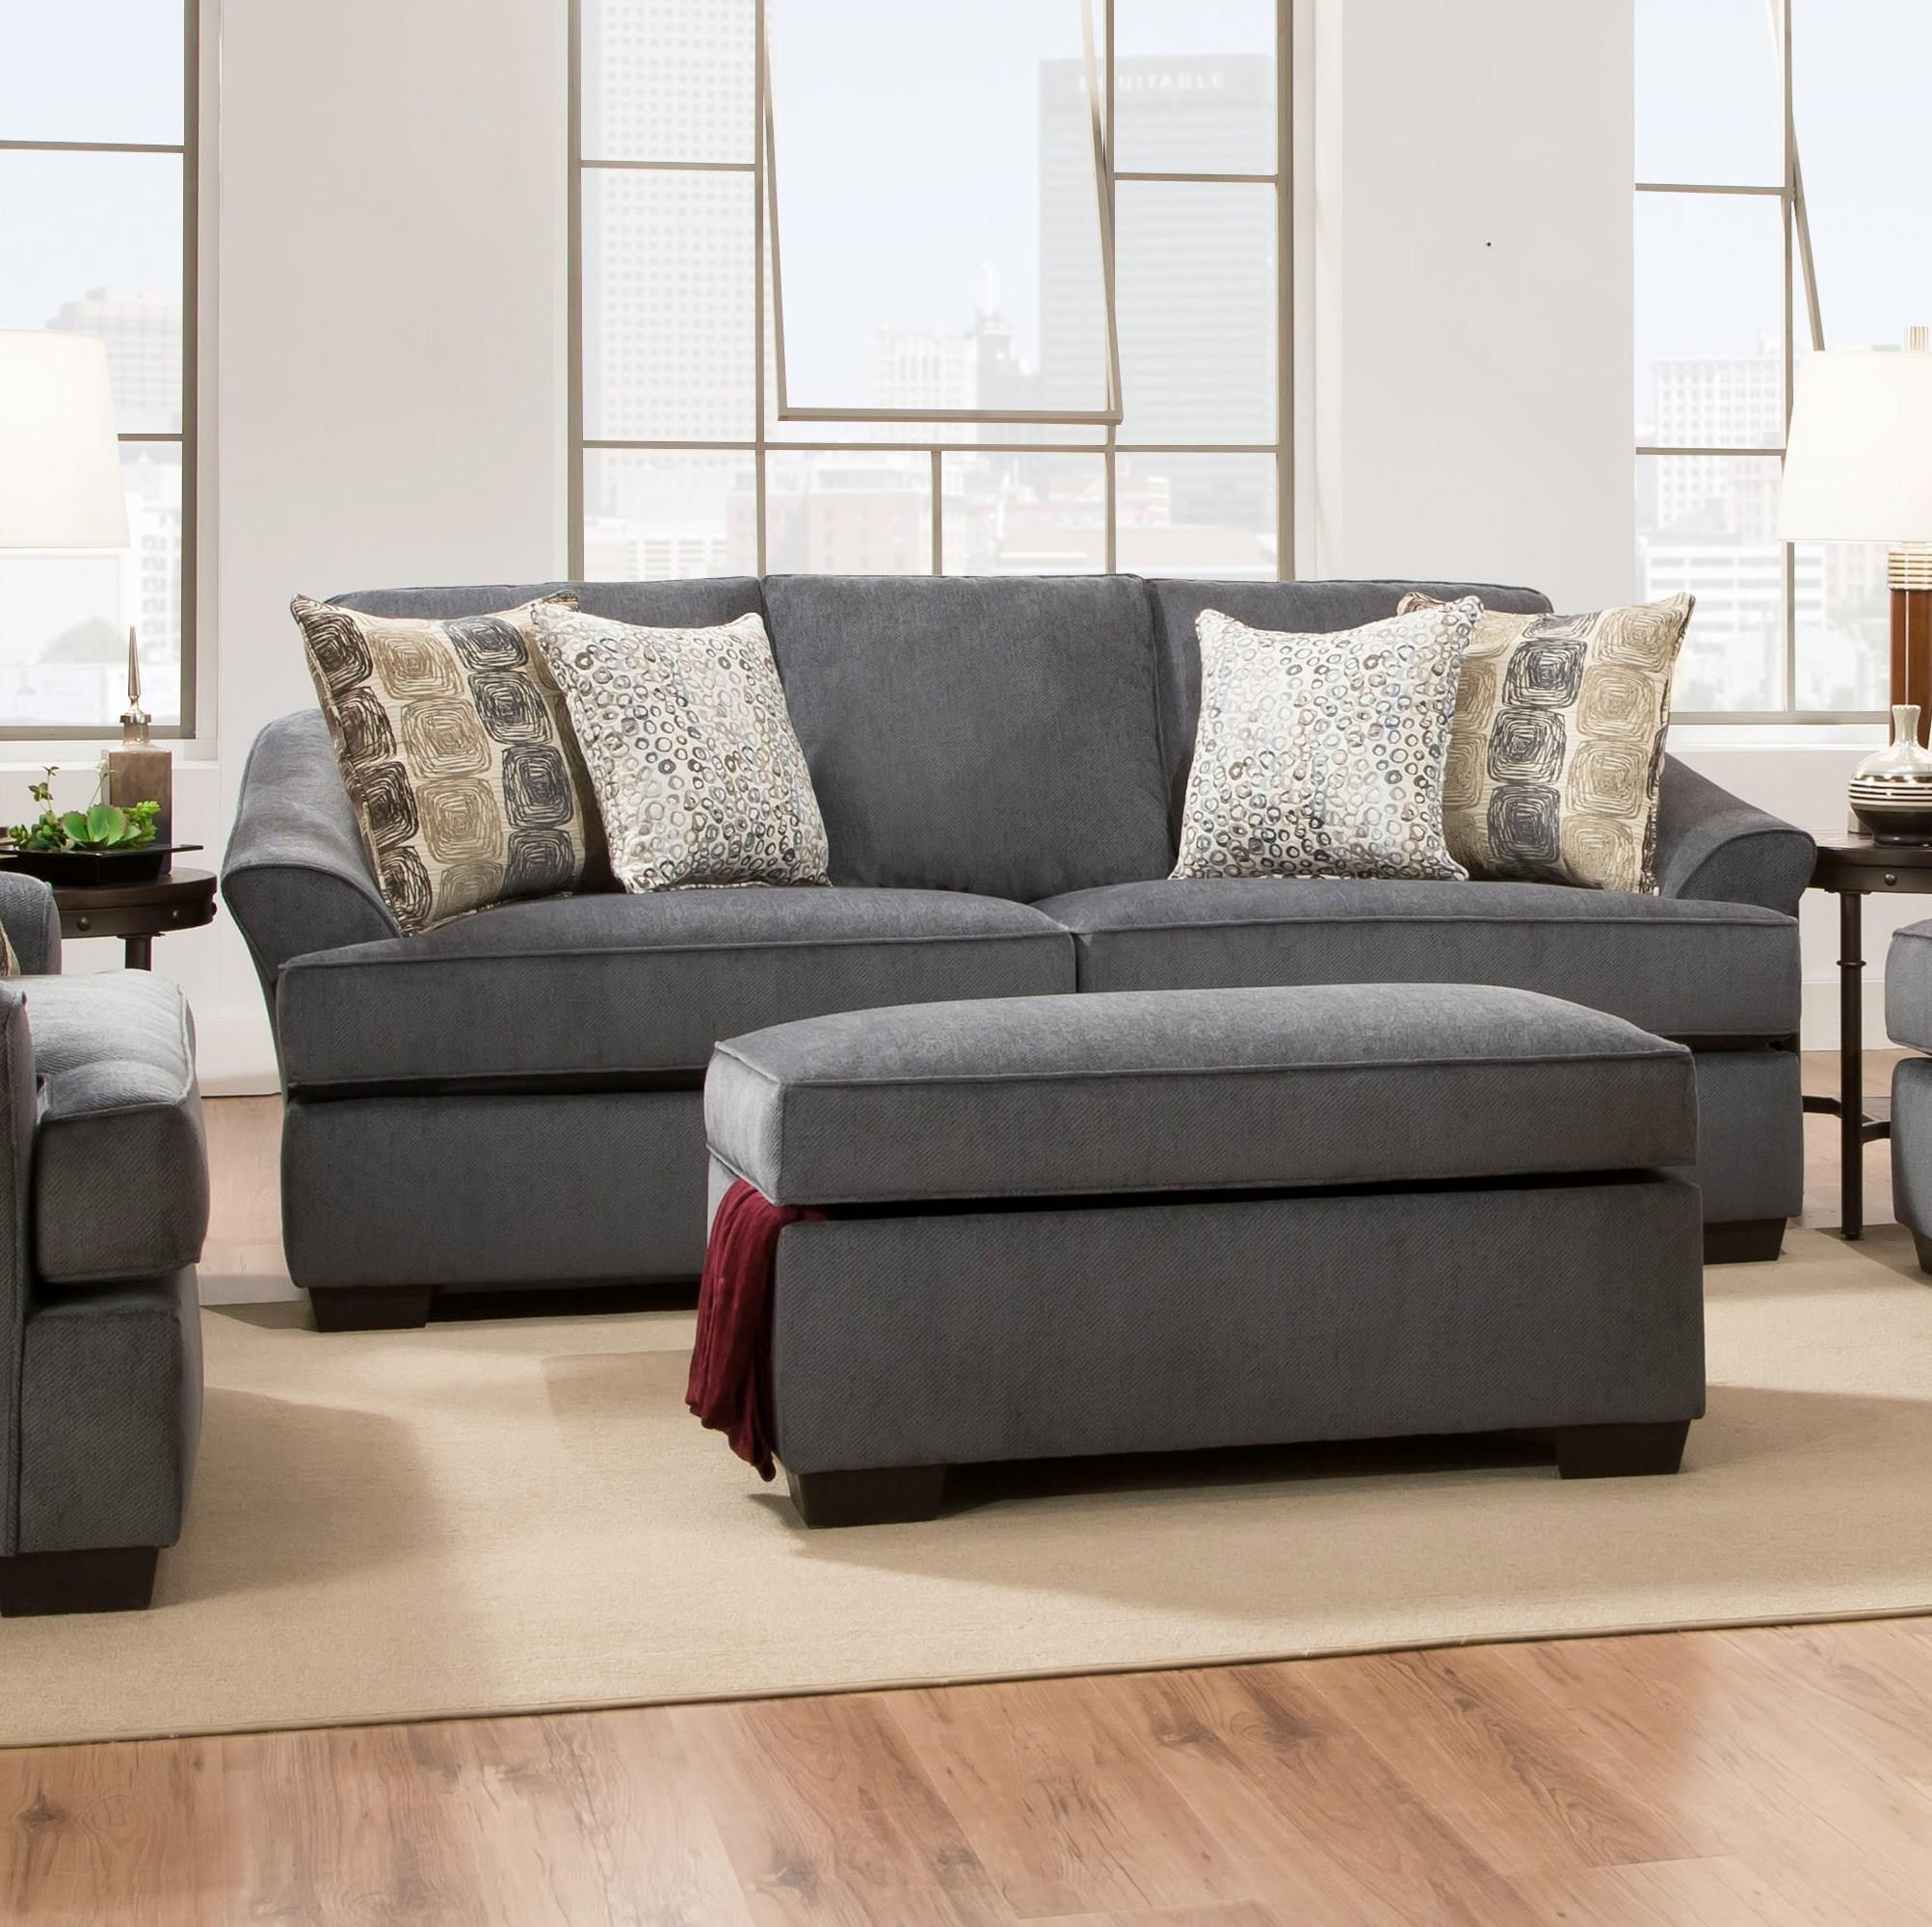 Simmons Upholstery 6522 Casual Sofa - Item Number: 6522S